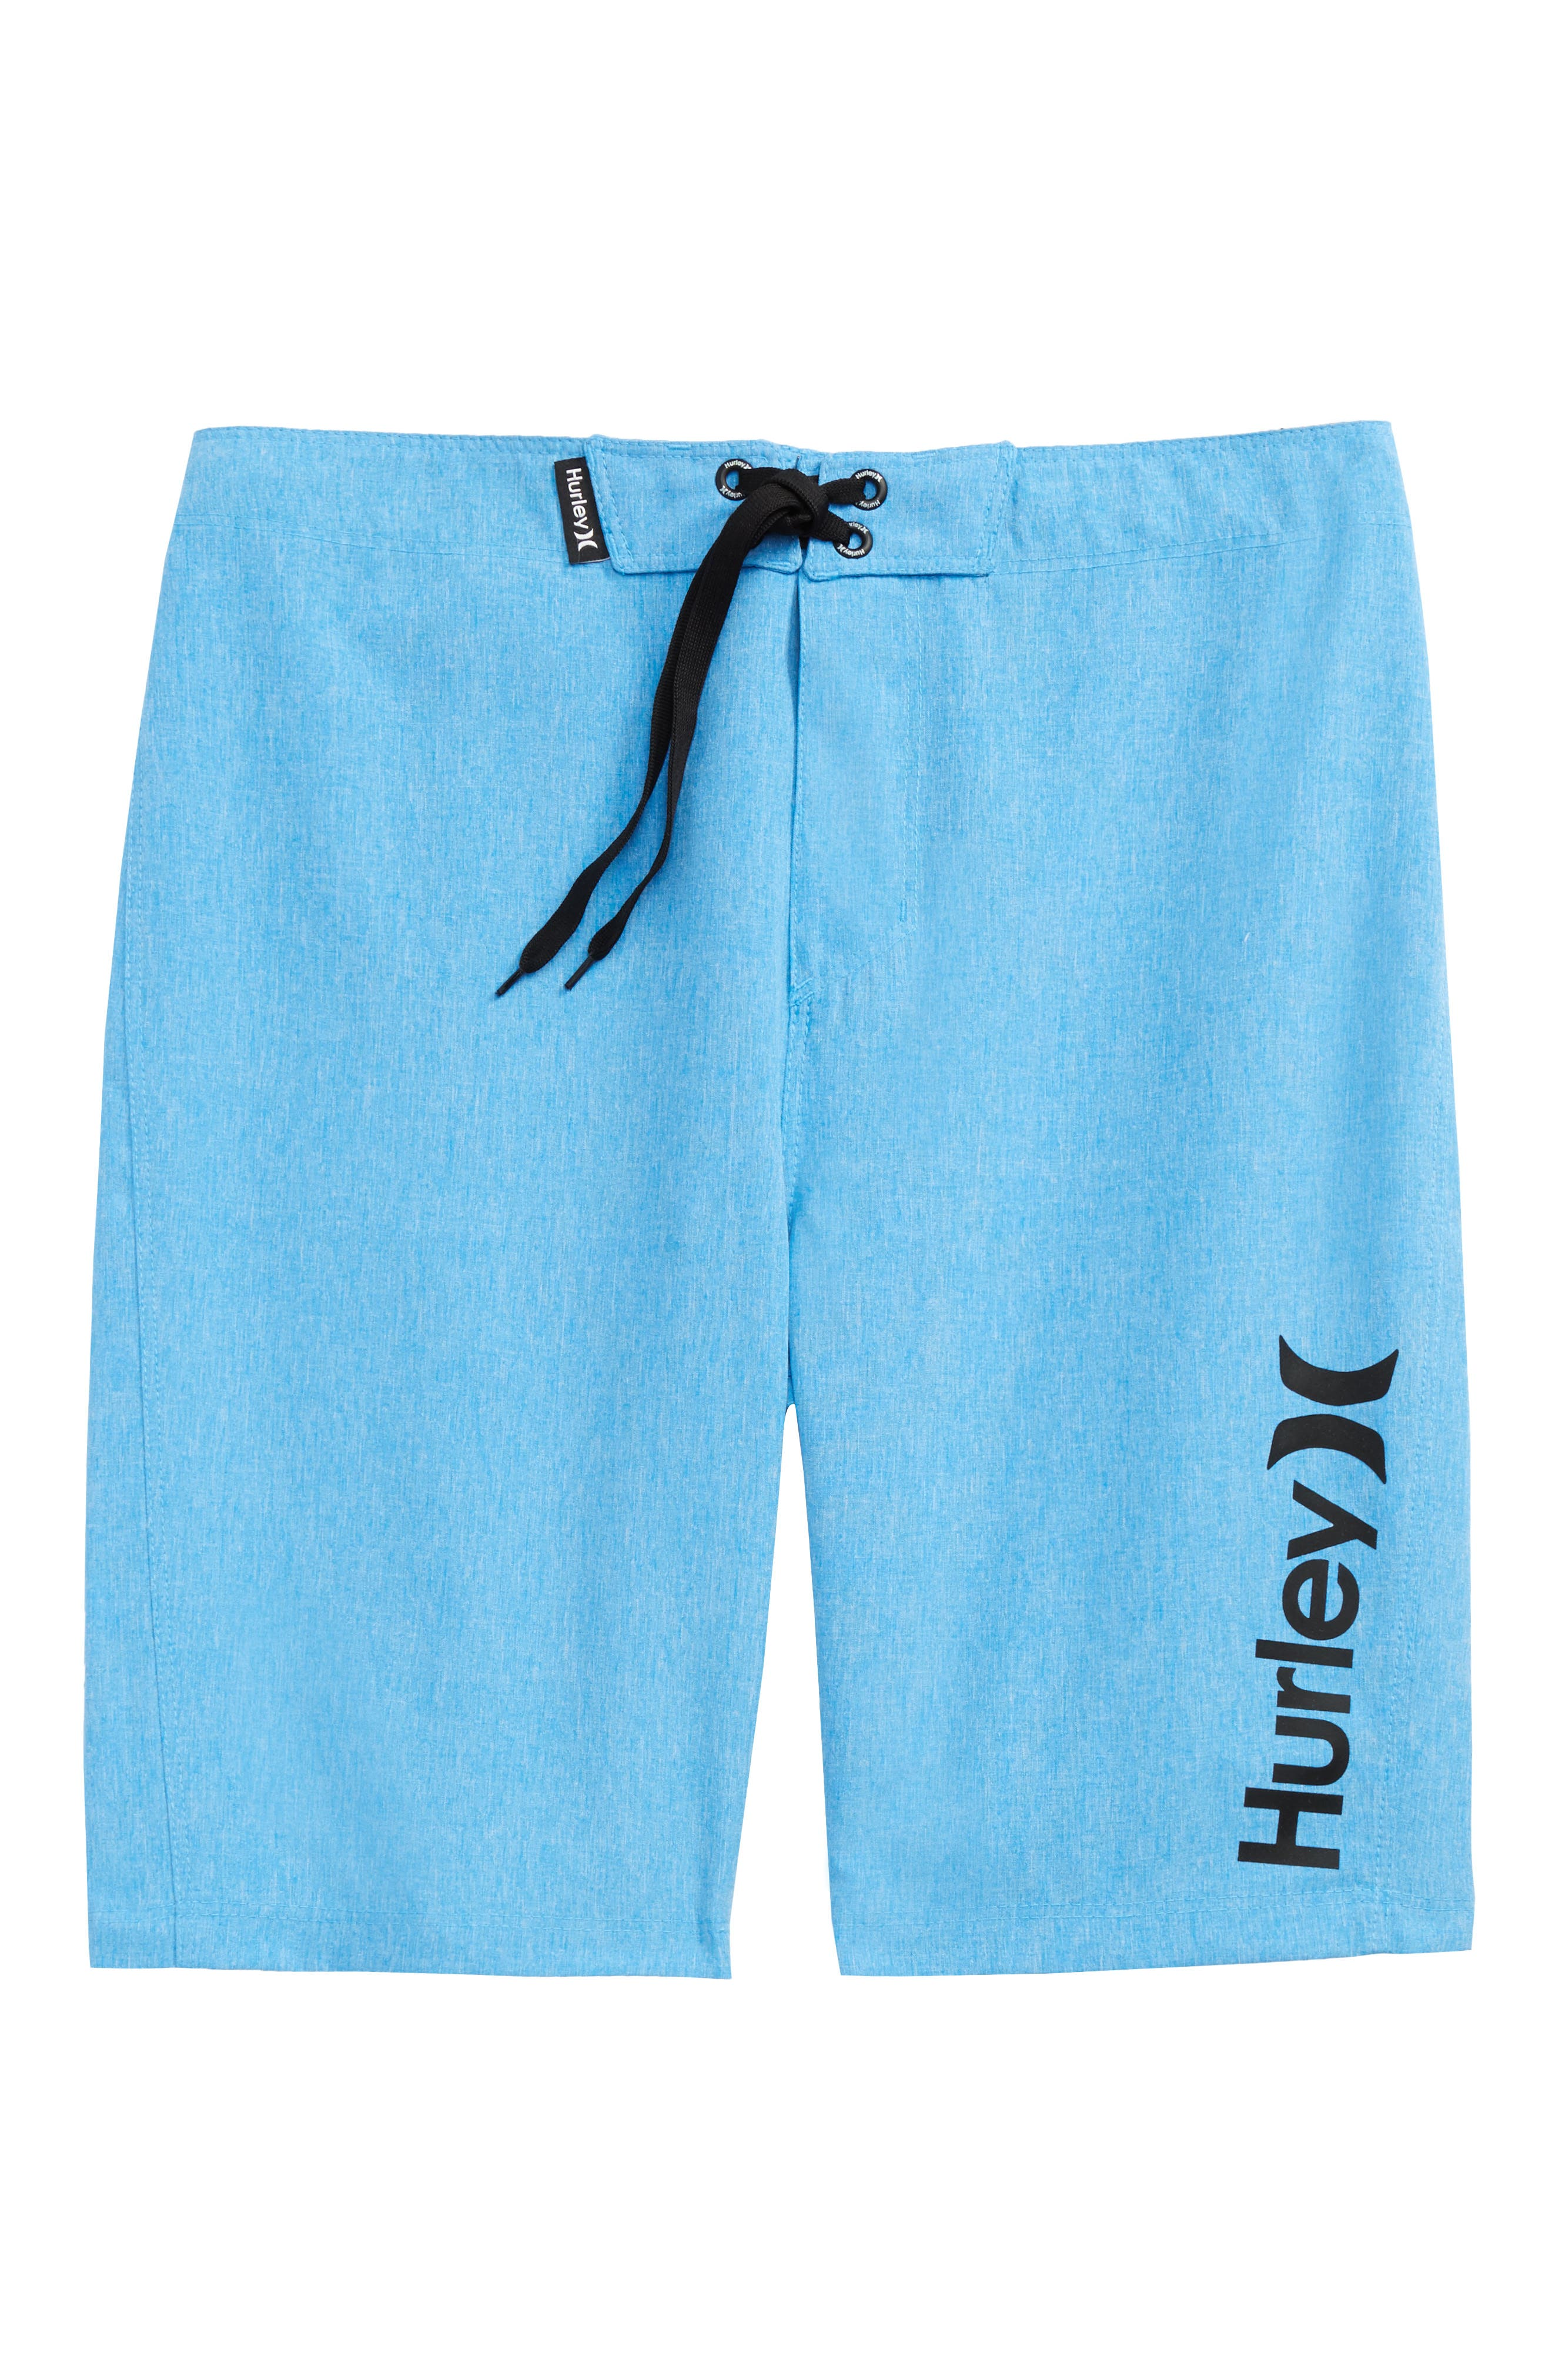 Alternate Image 1 Selected - Hurley One and Only Dri-FIT Board Shorts (Big Boys)